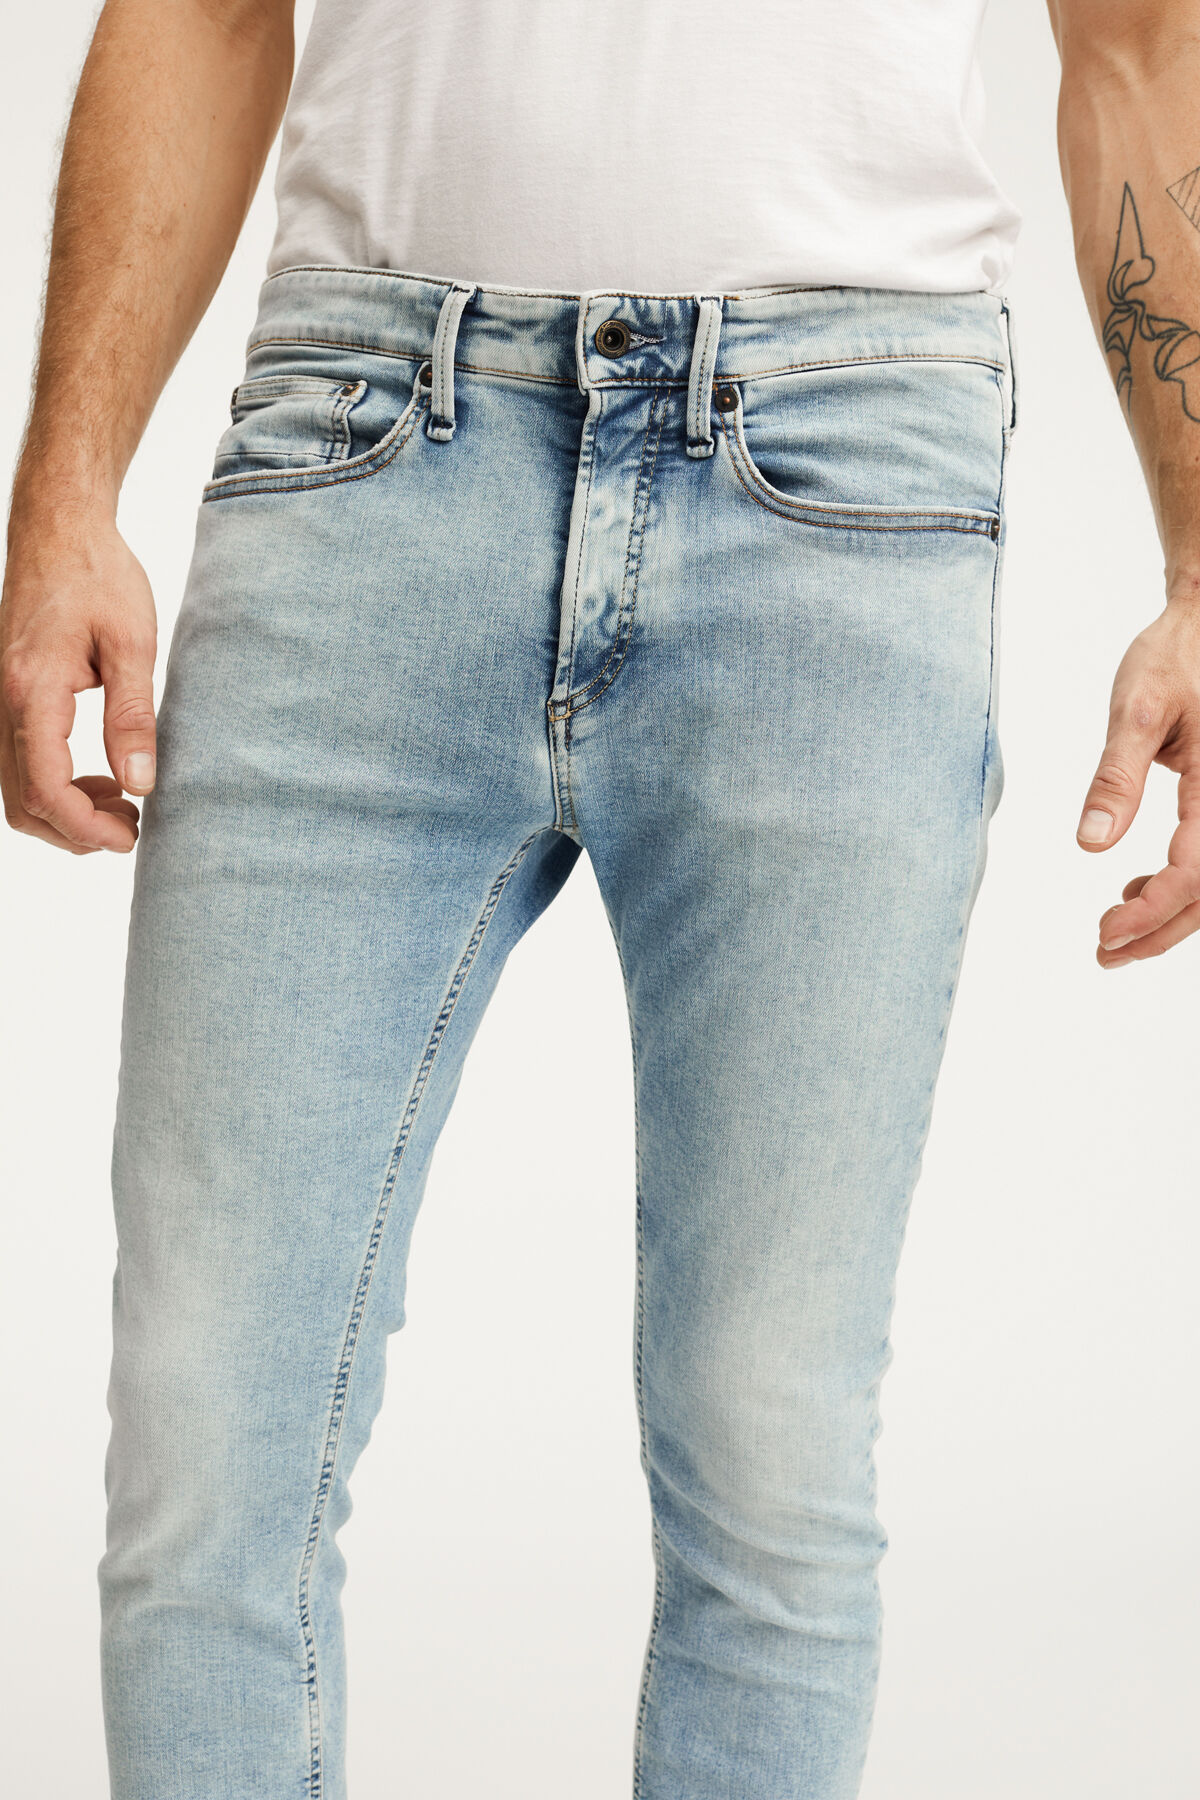 BOLT Summer Indigo Denim - Skinny Fit